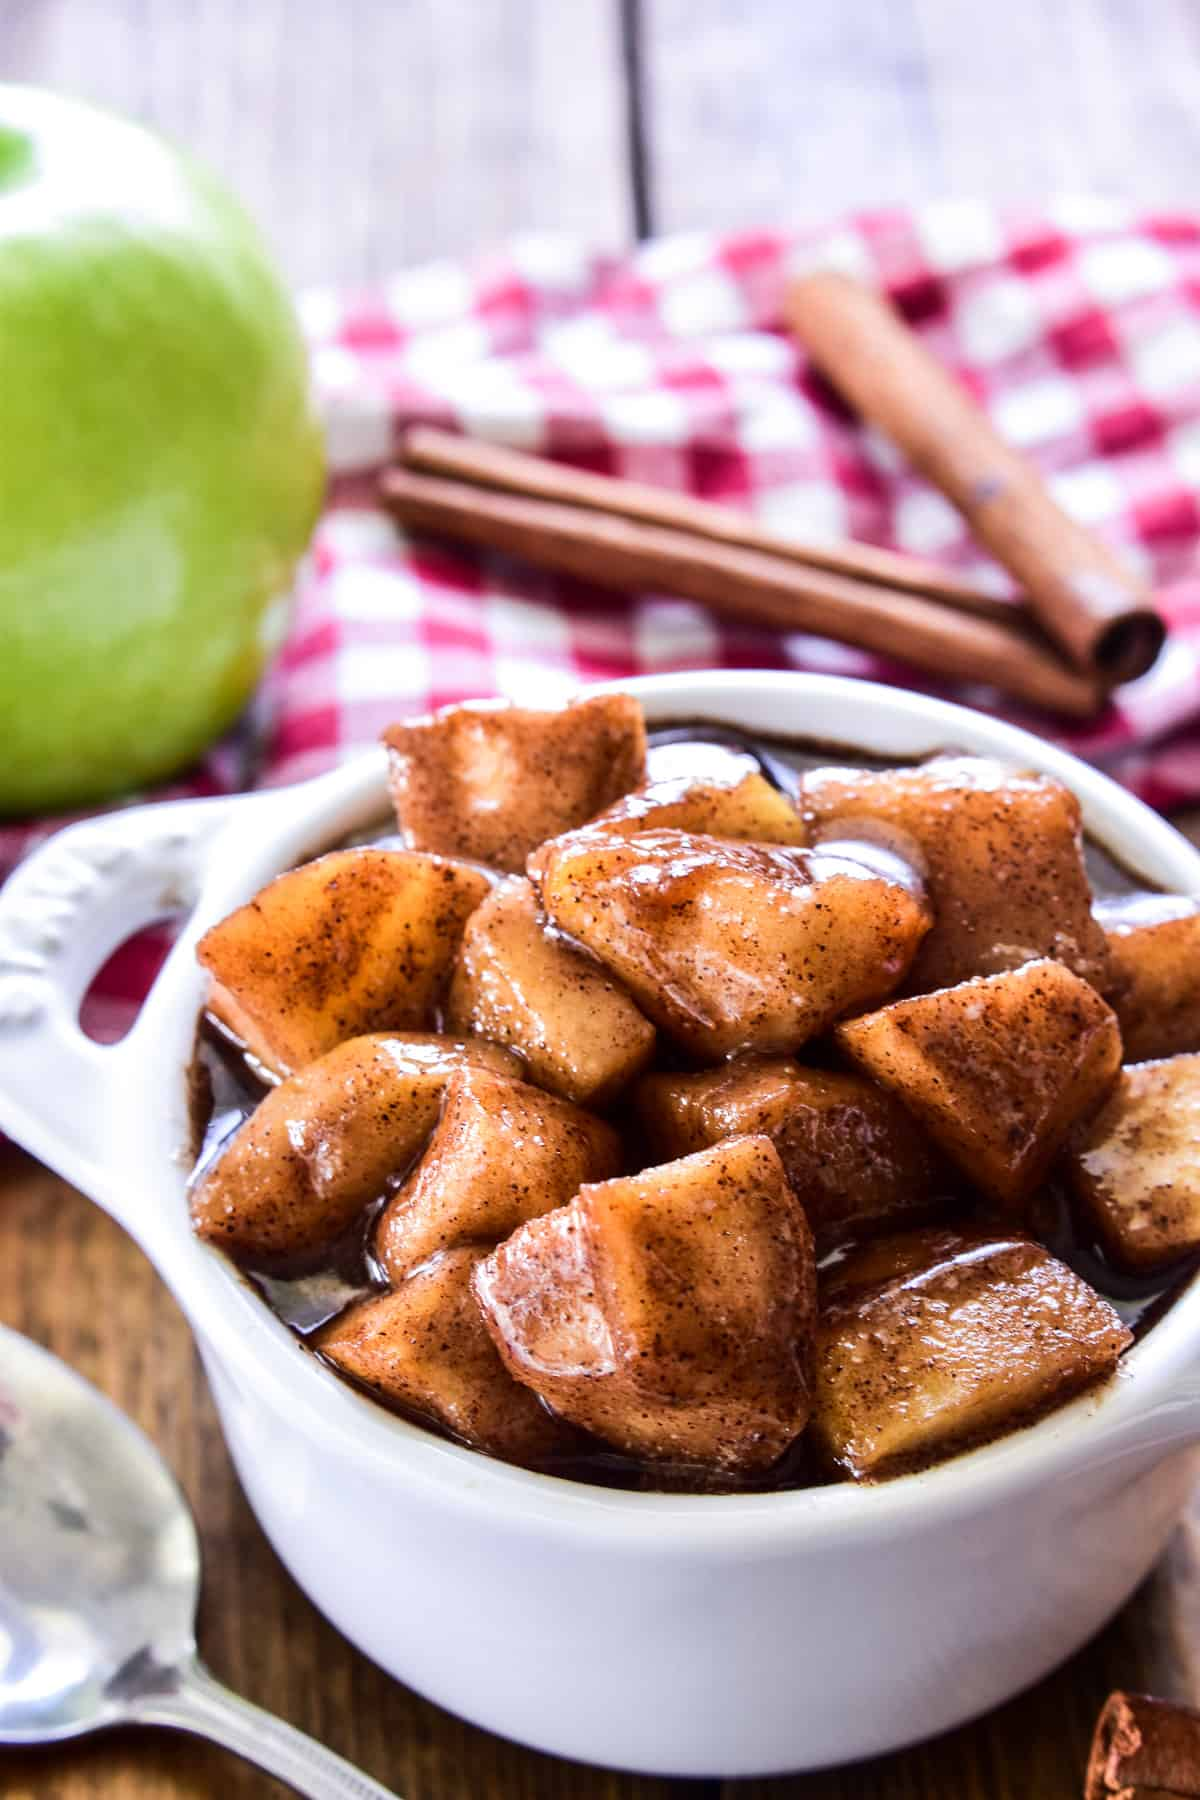 Fried Apples in a small white dish with a red checkered towel and cinnamon sticks